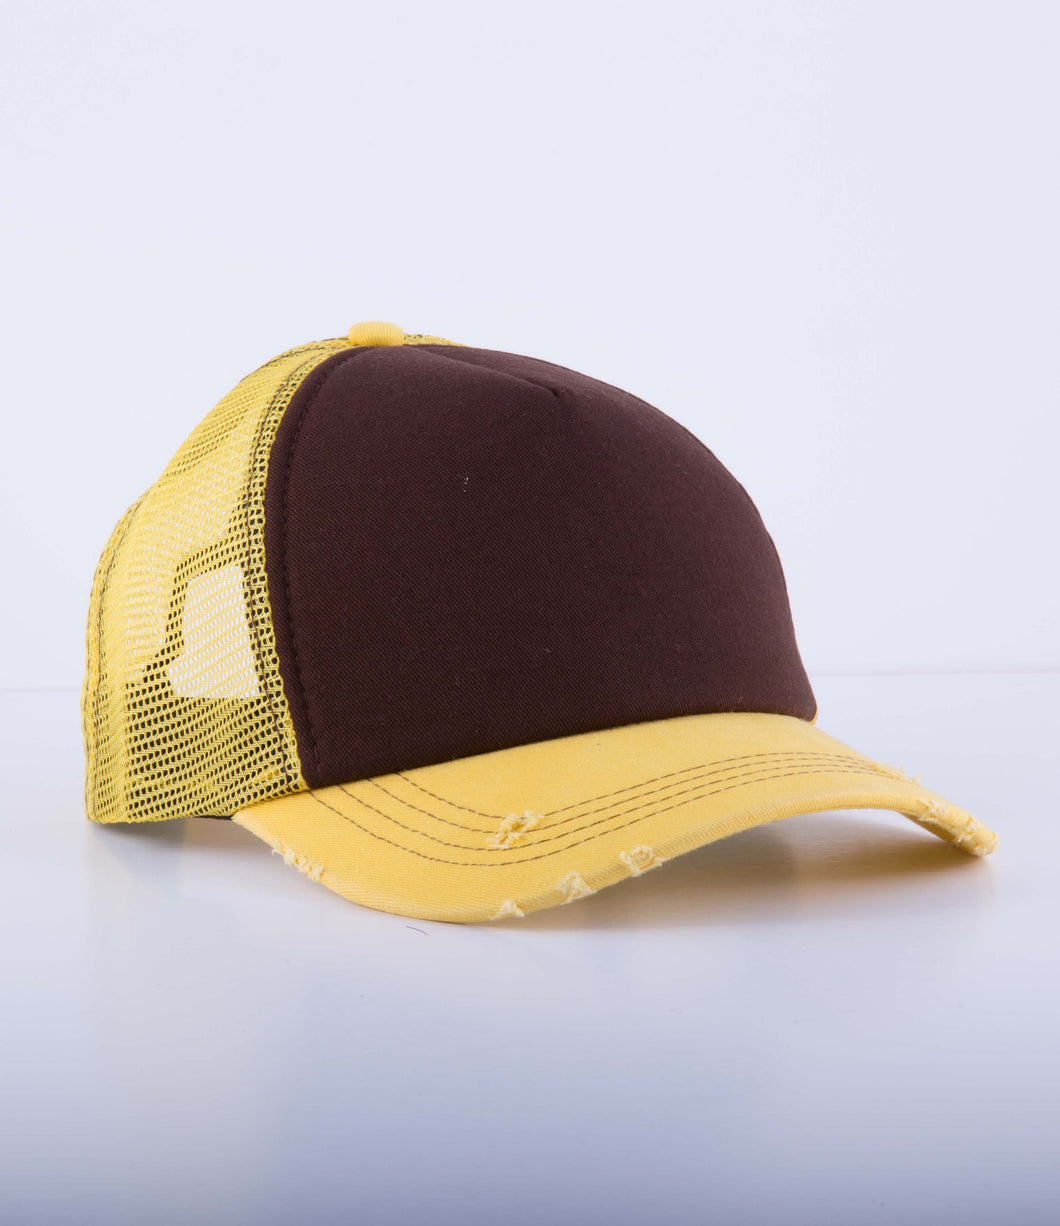 Yellow mesh cap (customize your design)